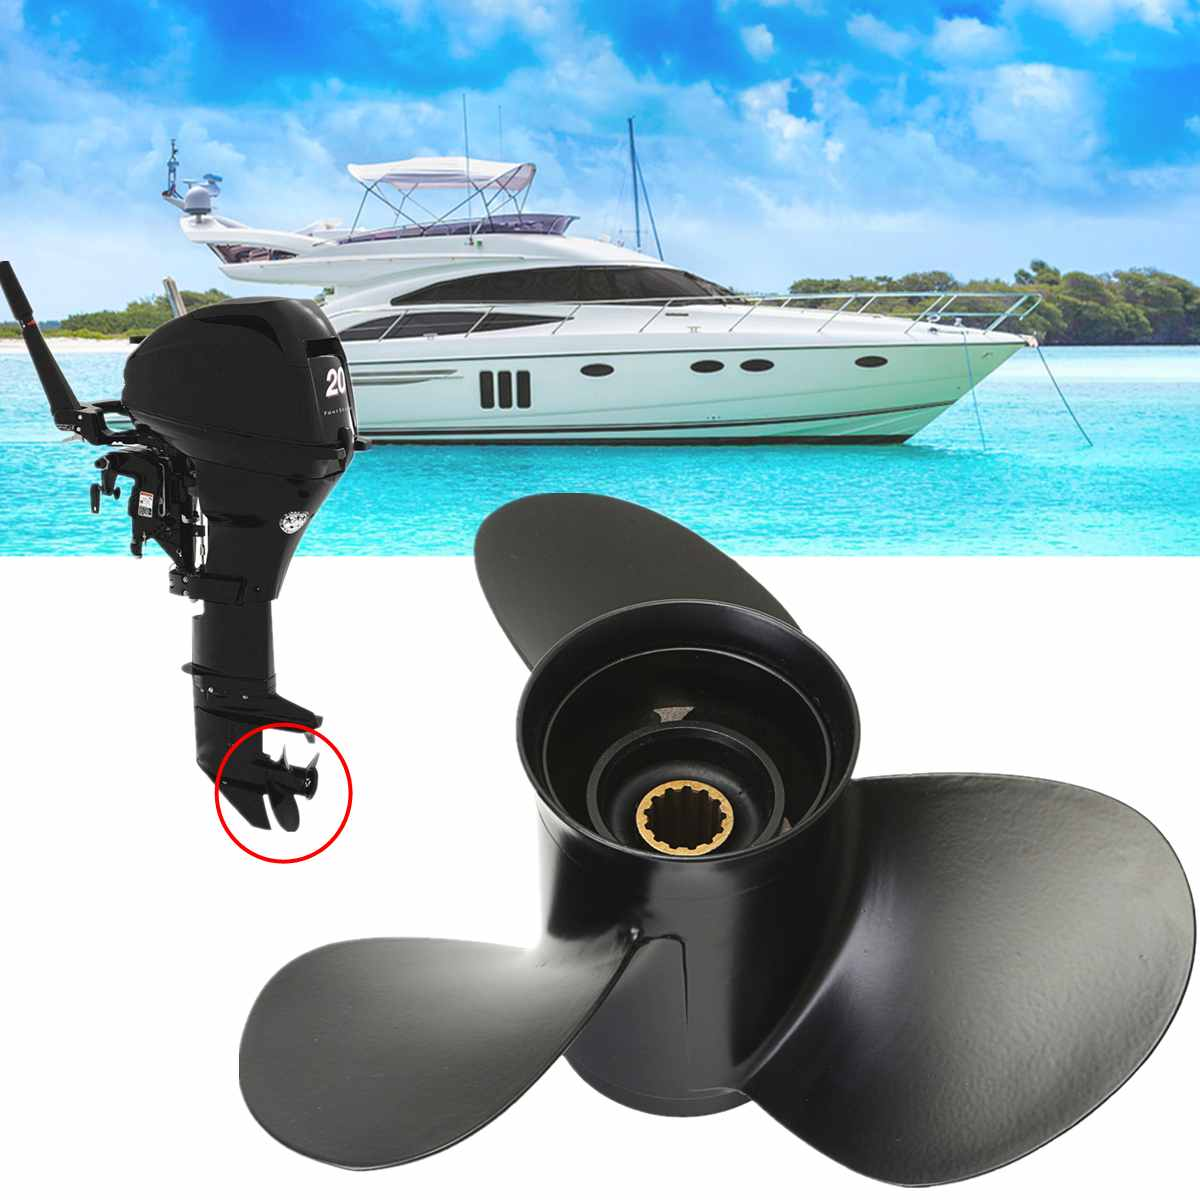 48 73136A40 10 3/8 x 13 Aluminum Alloy Marine Outboard Propeller For Mercury 25 70HP Black 3 Blades 13 Spline Tooth R Rotation-in Marine Propeller from Automobiles & Motorcycles    1